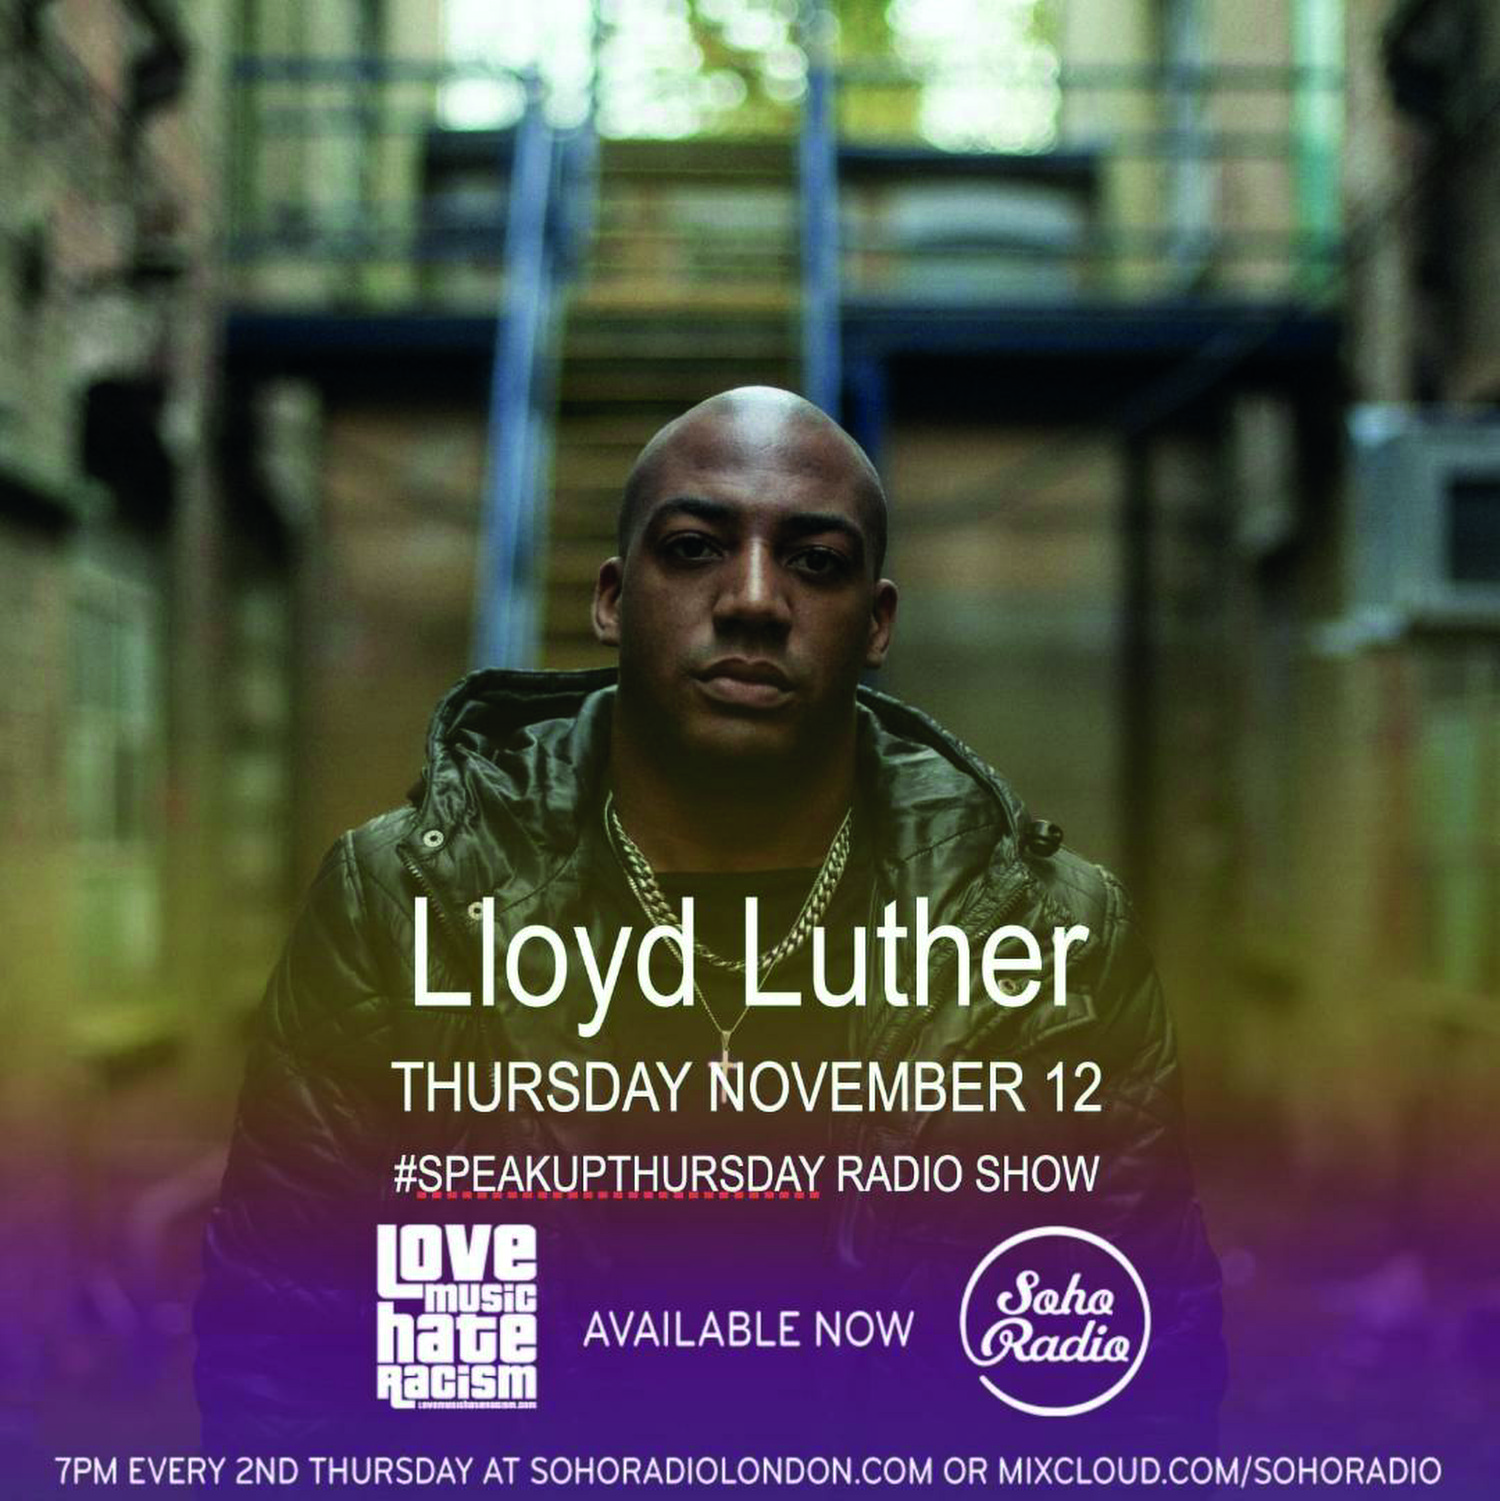 #speakupthursday featuring Lloyd Luther